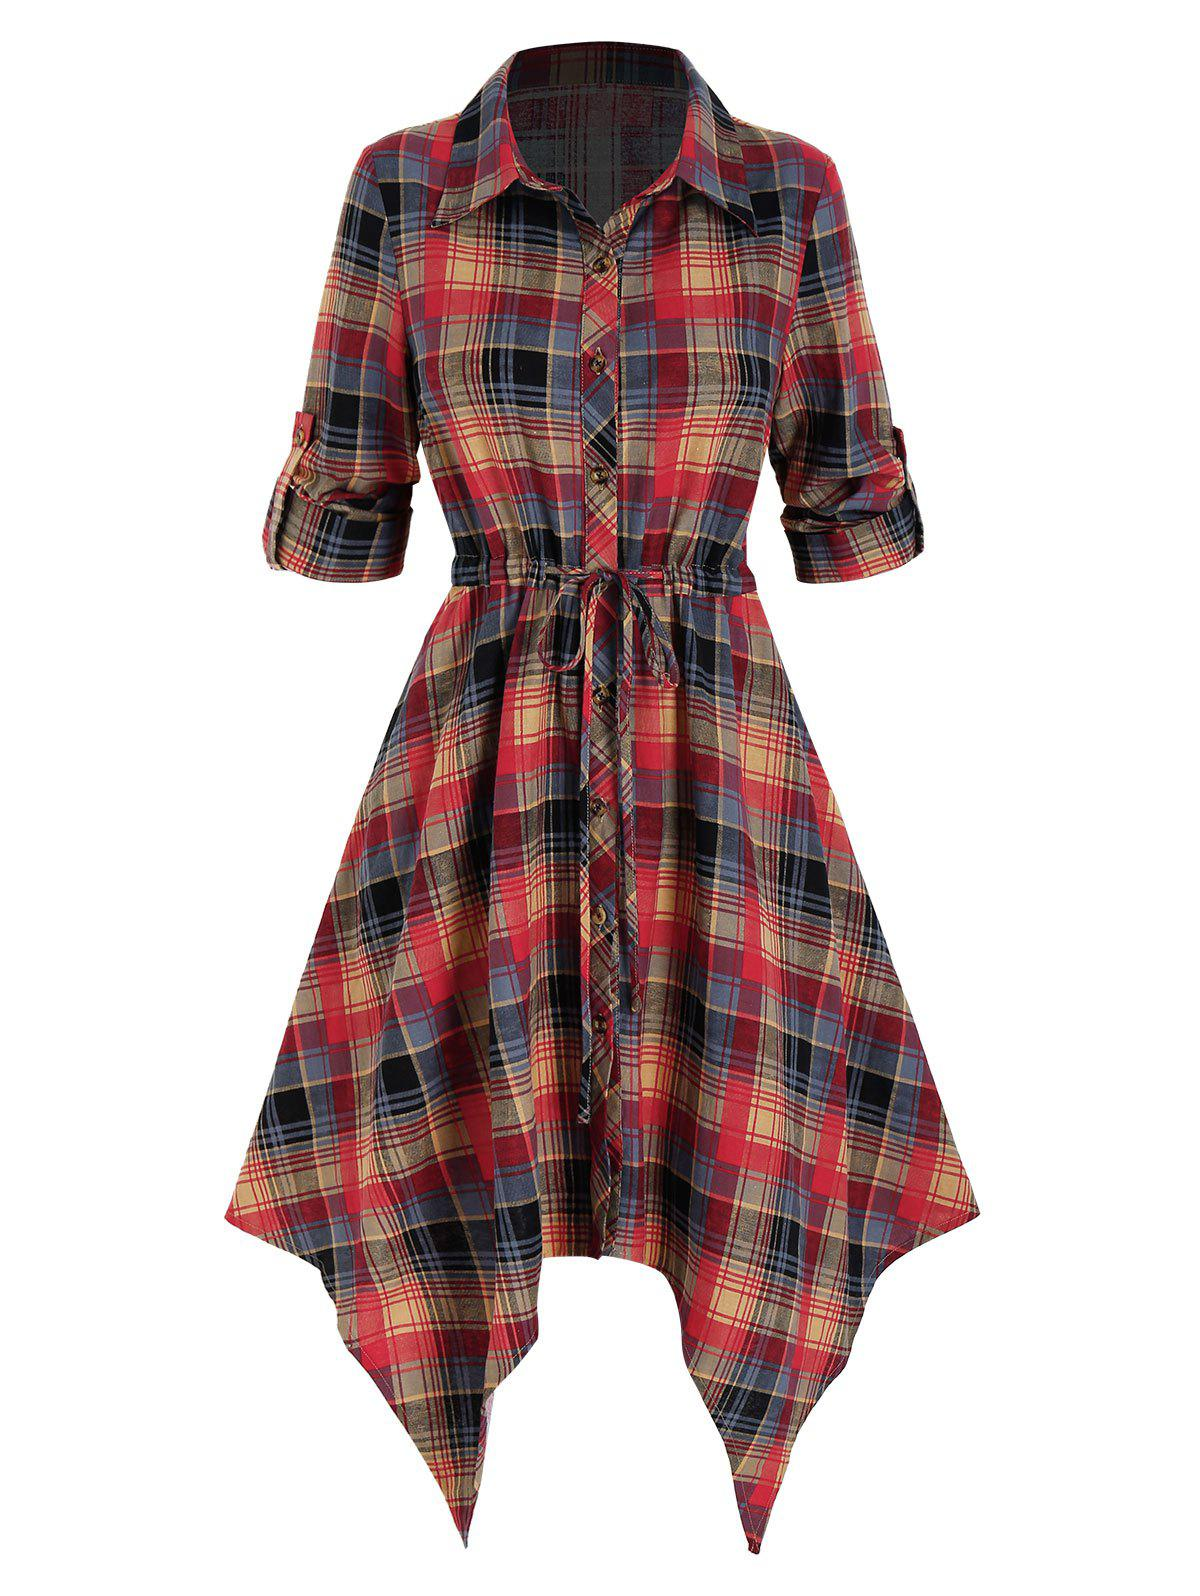 Plaid Print Drawstring Irregular Shirt Dress - multicolor A L